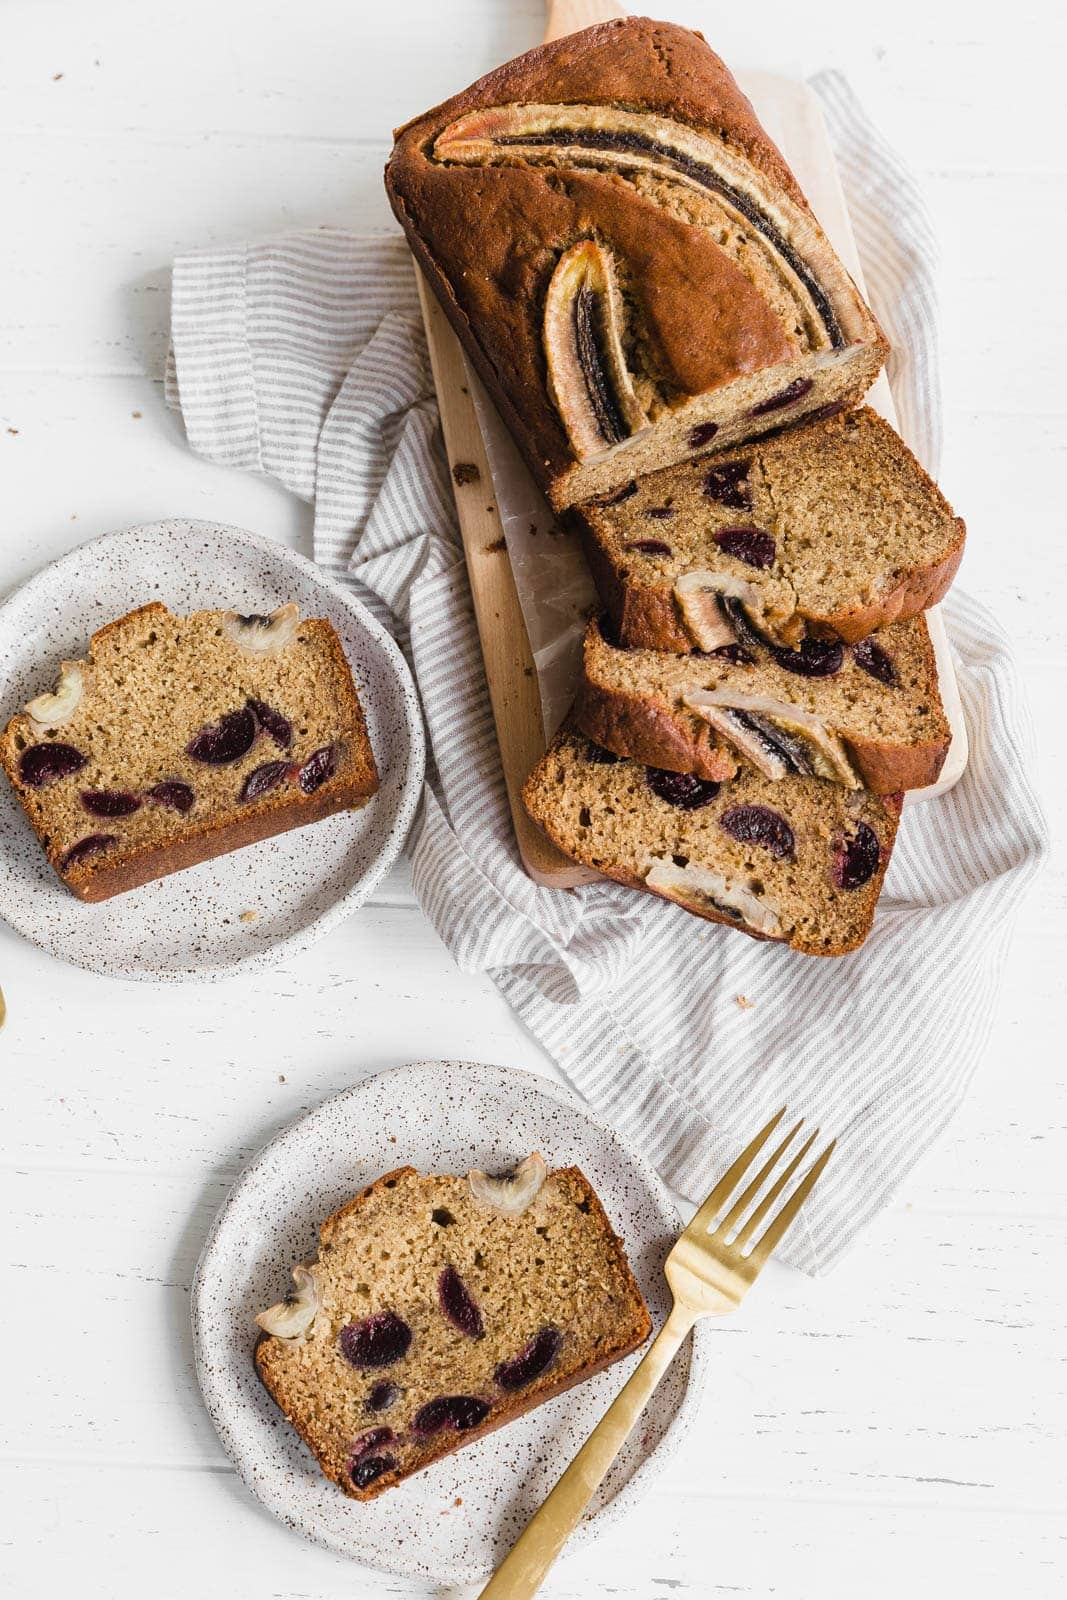 Boozy bourbon soaked cherry banana bread just in time for fall shenanigans. Oh hey there, new best friend.